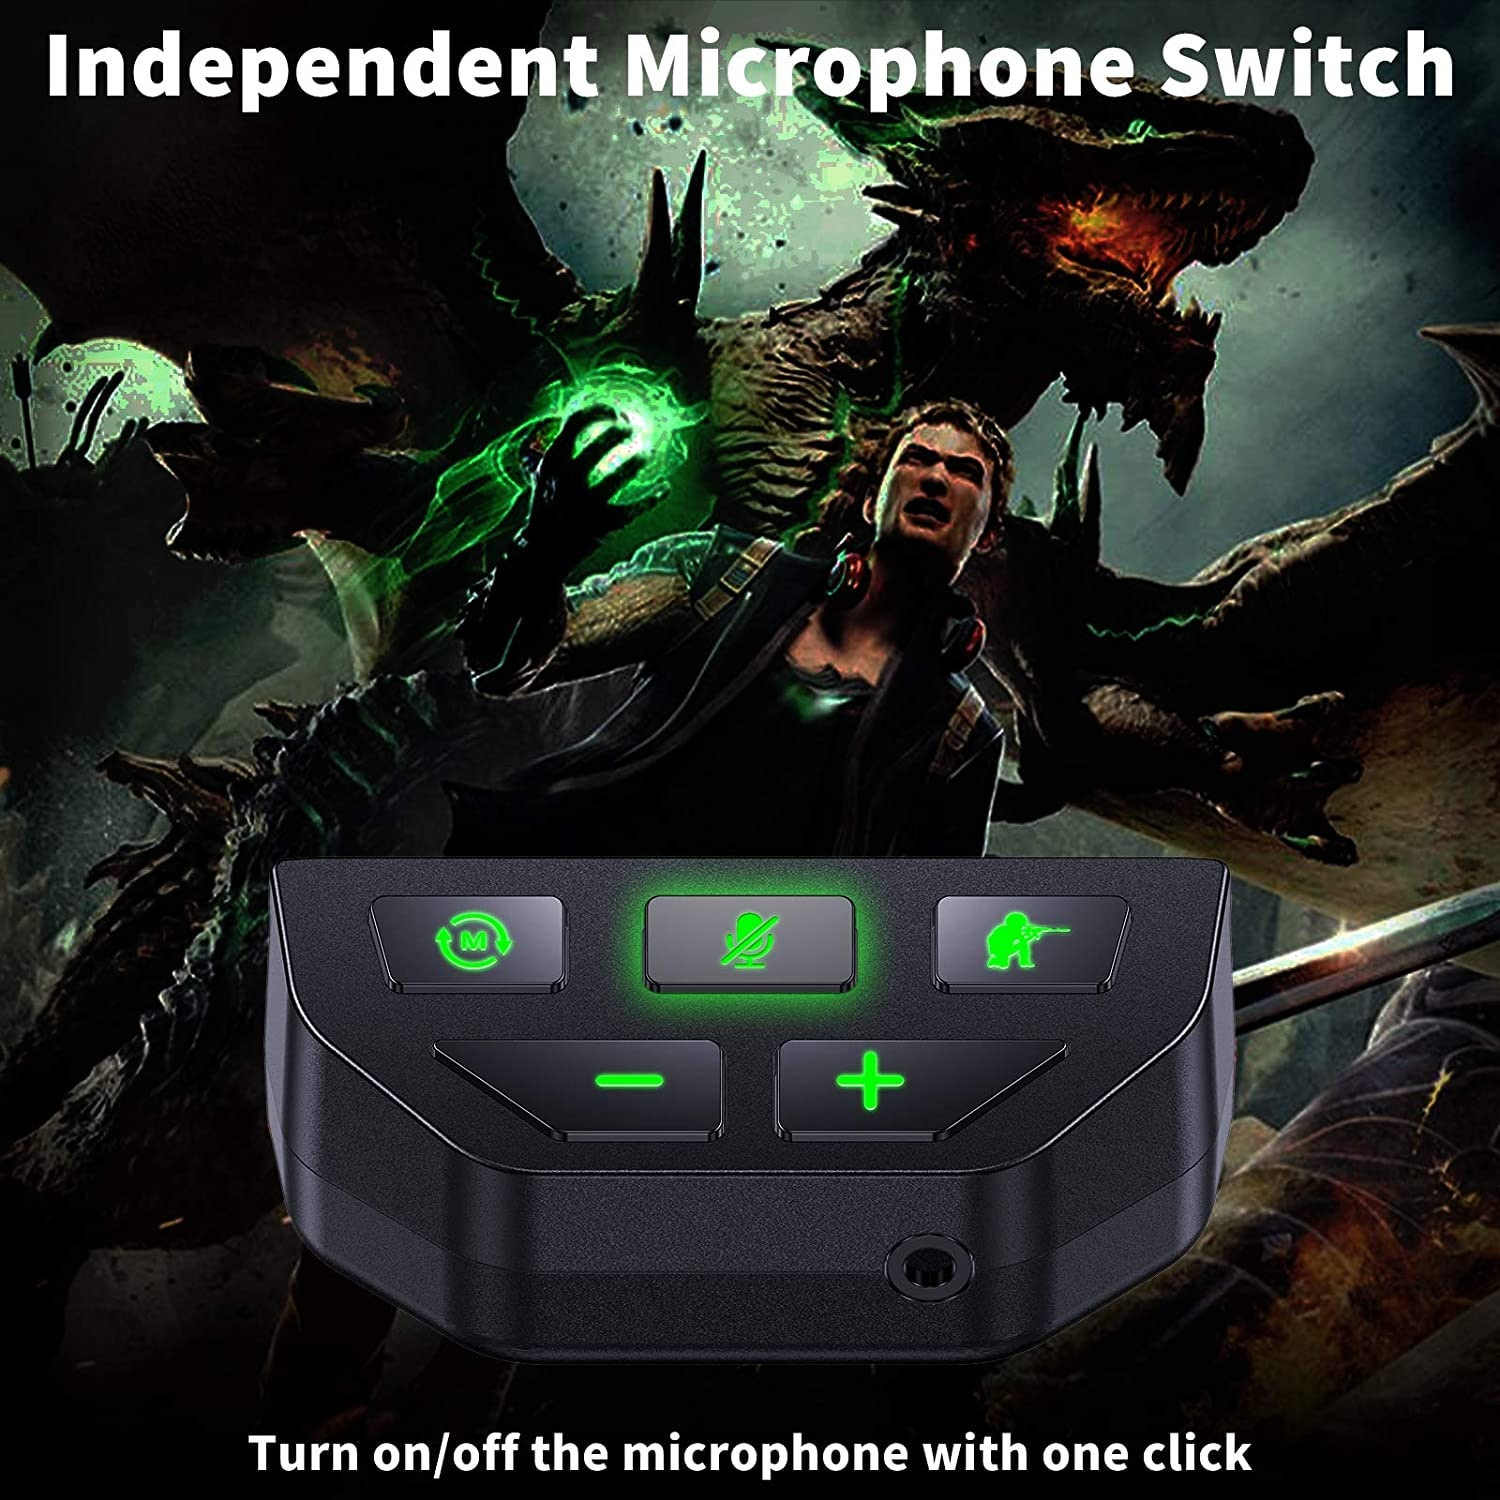 Sound Enhancer For Xbox Series X S One S Wireless Controller Stereo Headset Adapter Joystick Audio Headphone Converter Gaming - 5